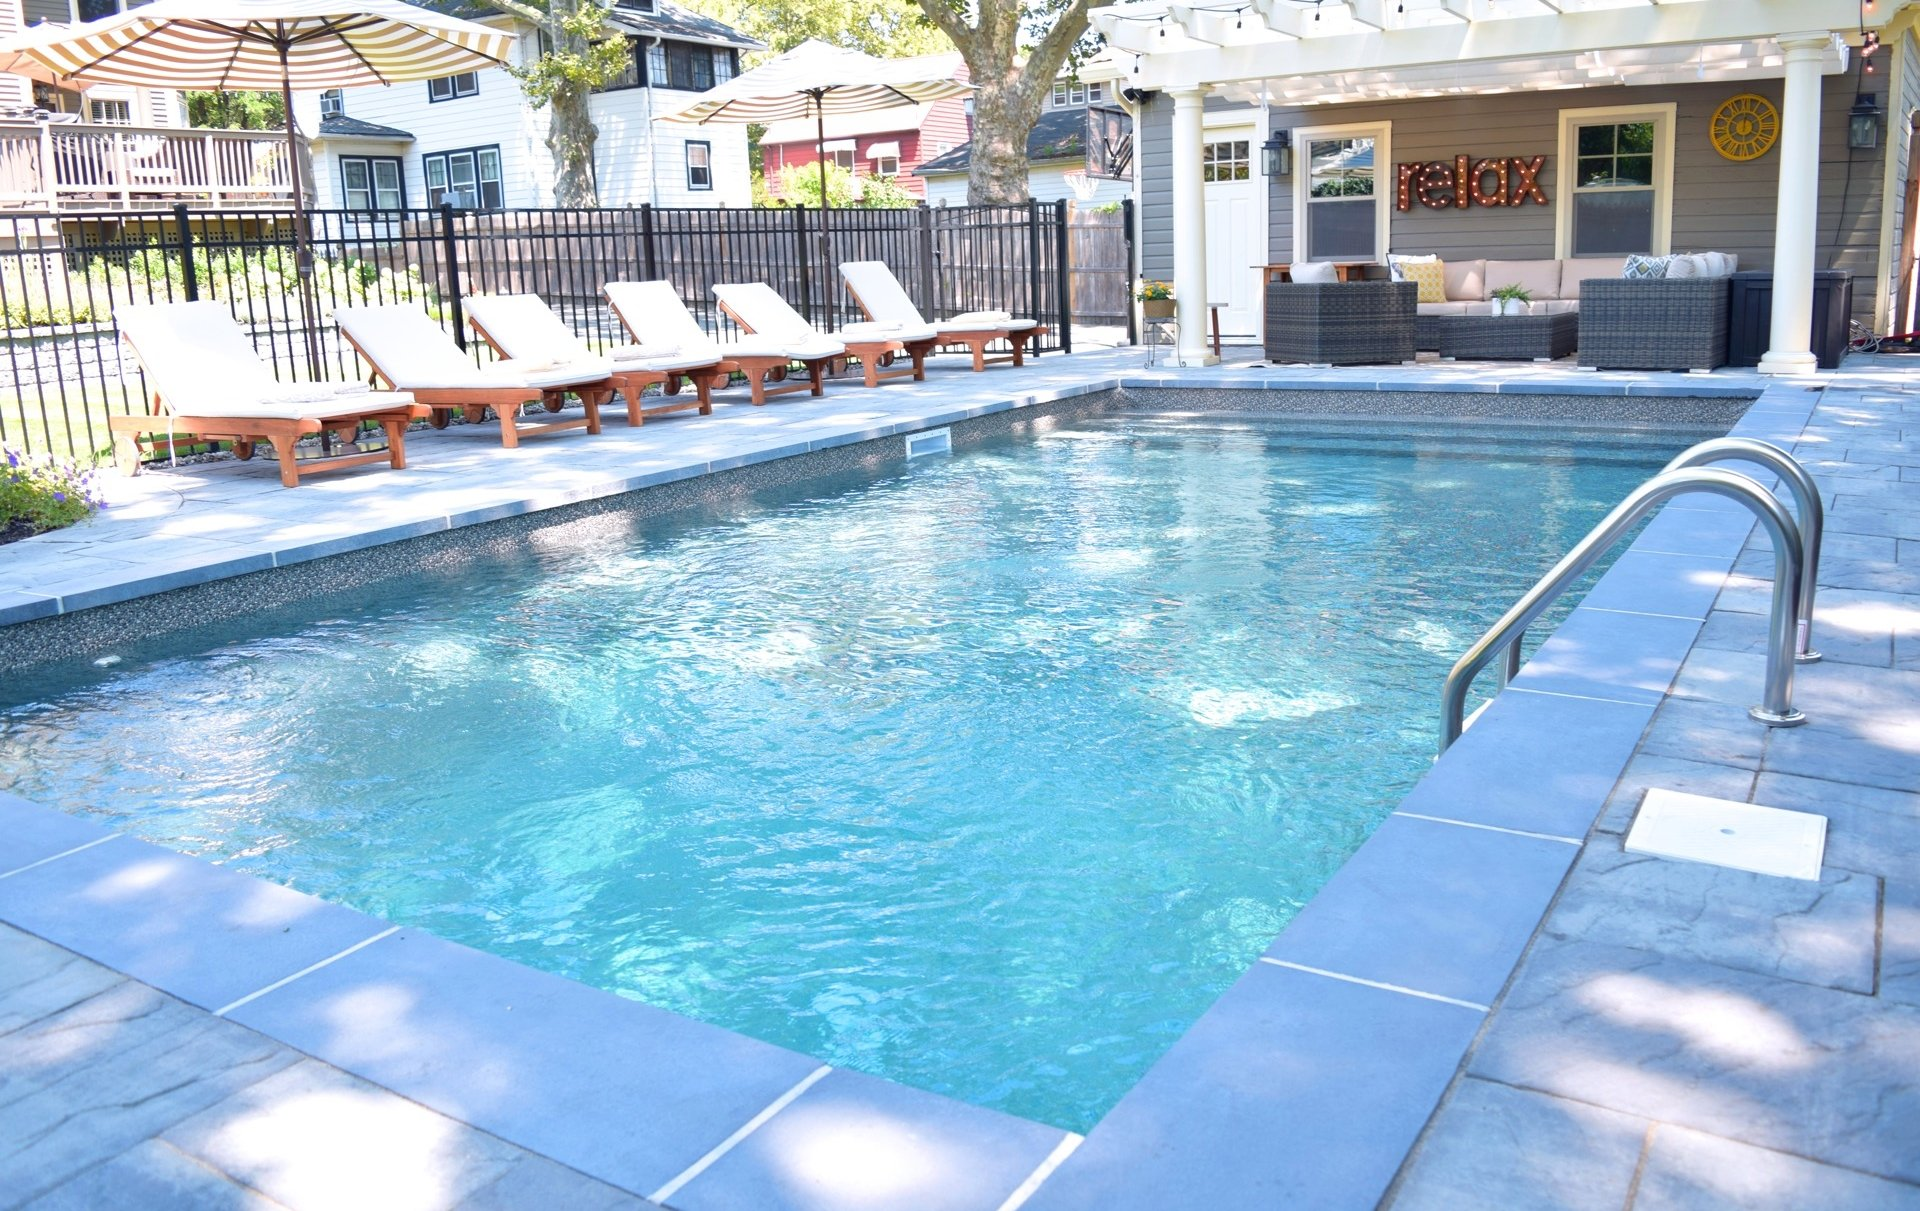 Rutherford, NJ built by The Pool Boss, #1 in New Jersey for Affordable, Luxury Pool Construction